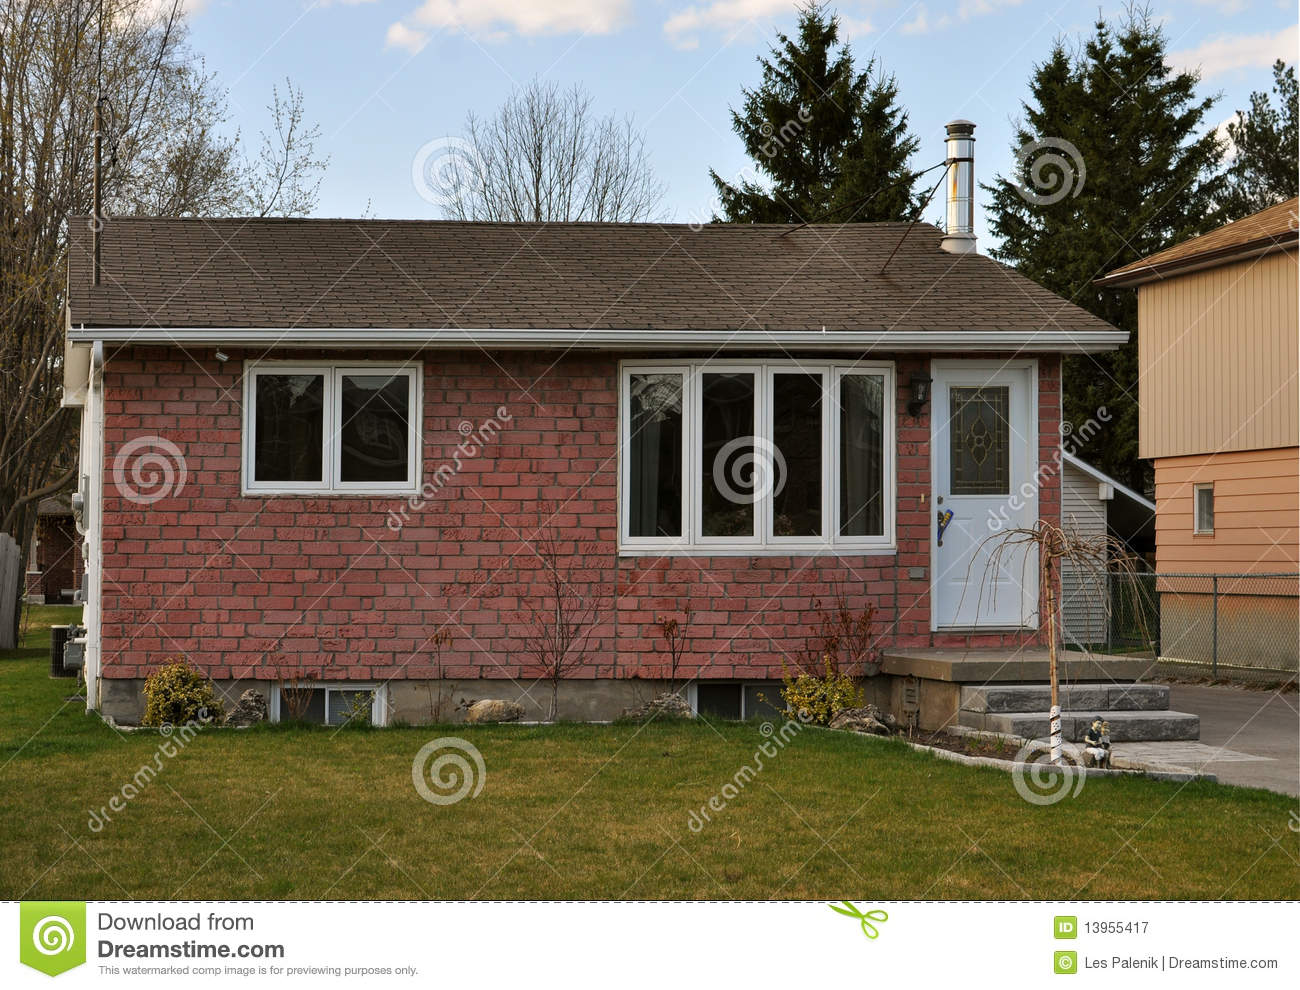 Simple small house royalty free stock photography image Simple small house